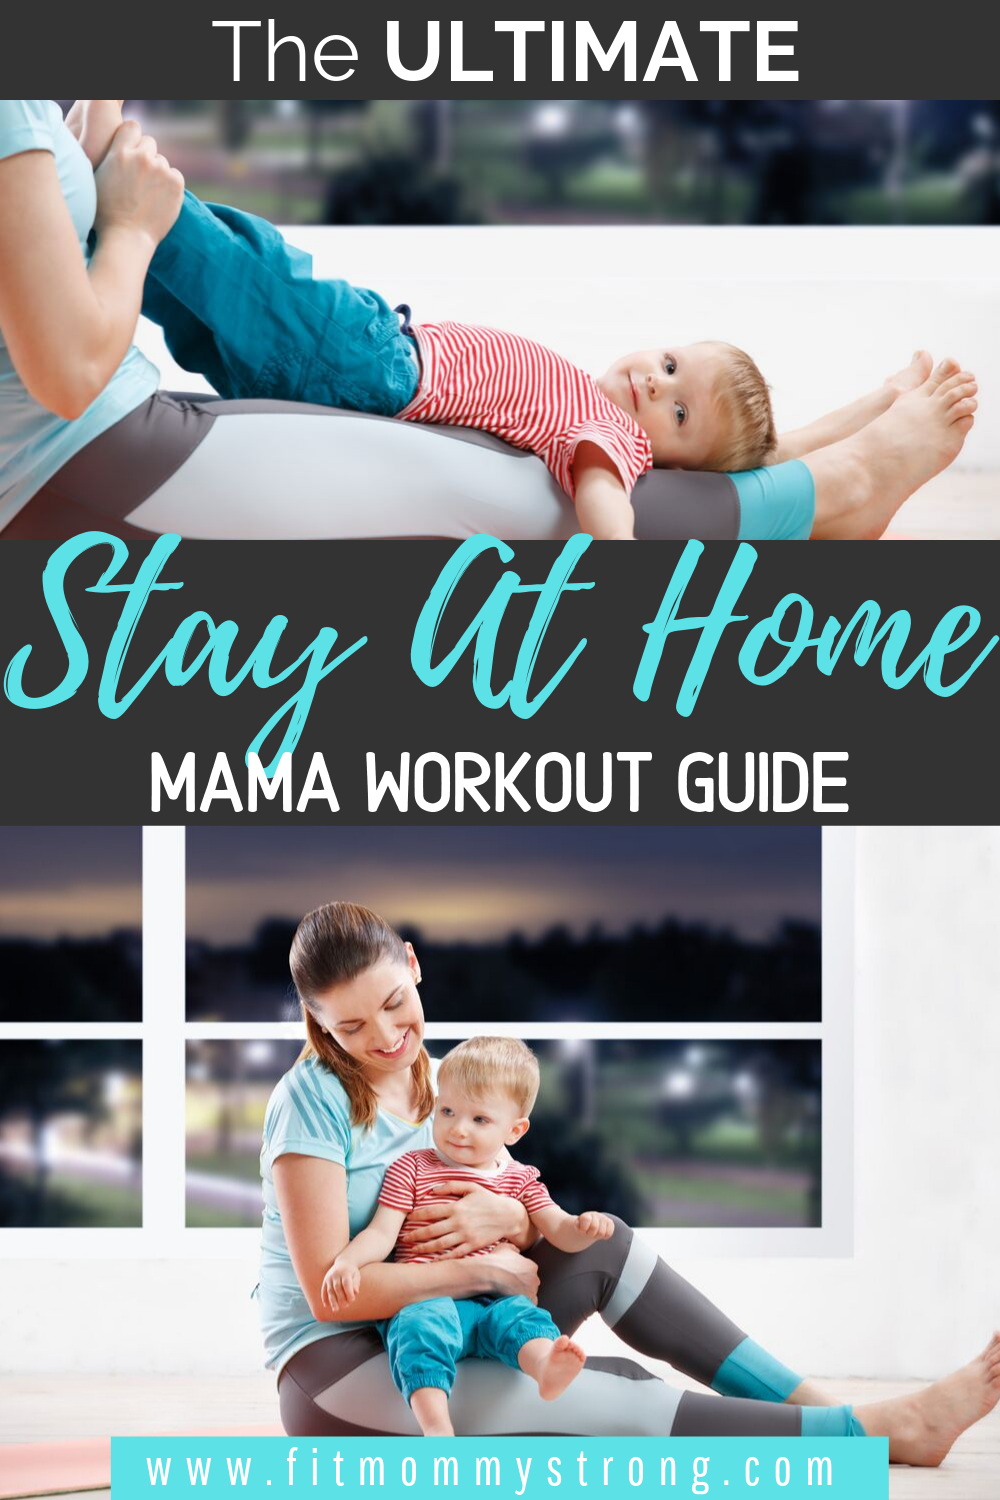 The Ultimate Stay At Home Mom Workout Guide - Tips to help you get rid of that after baby belly and get back to your pre-baby body. #stayathome